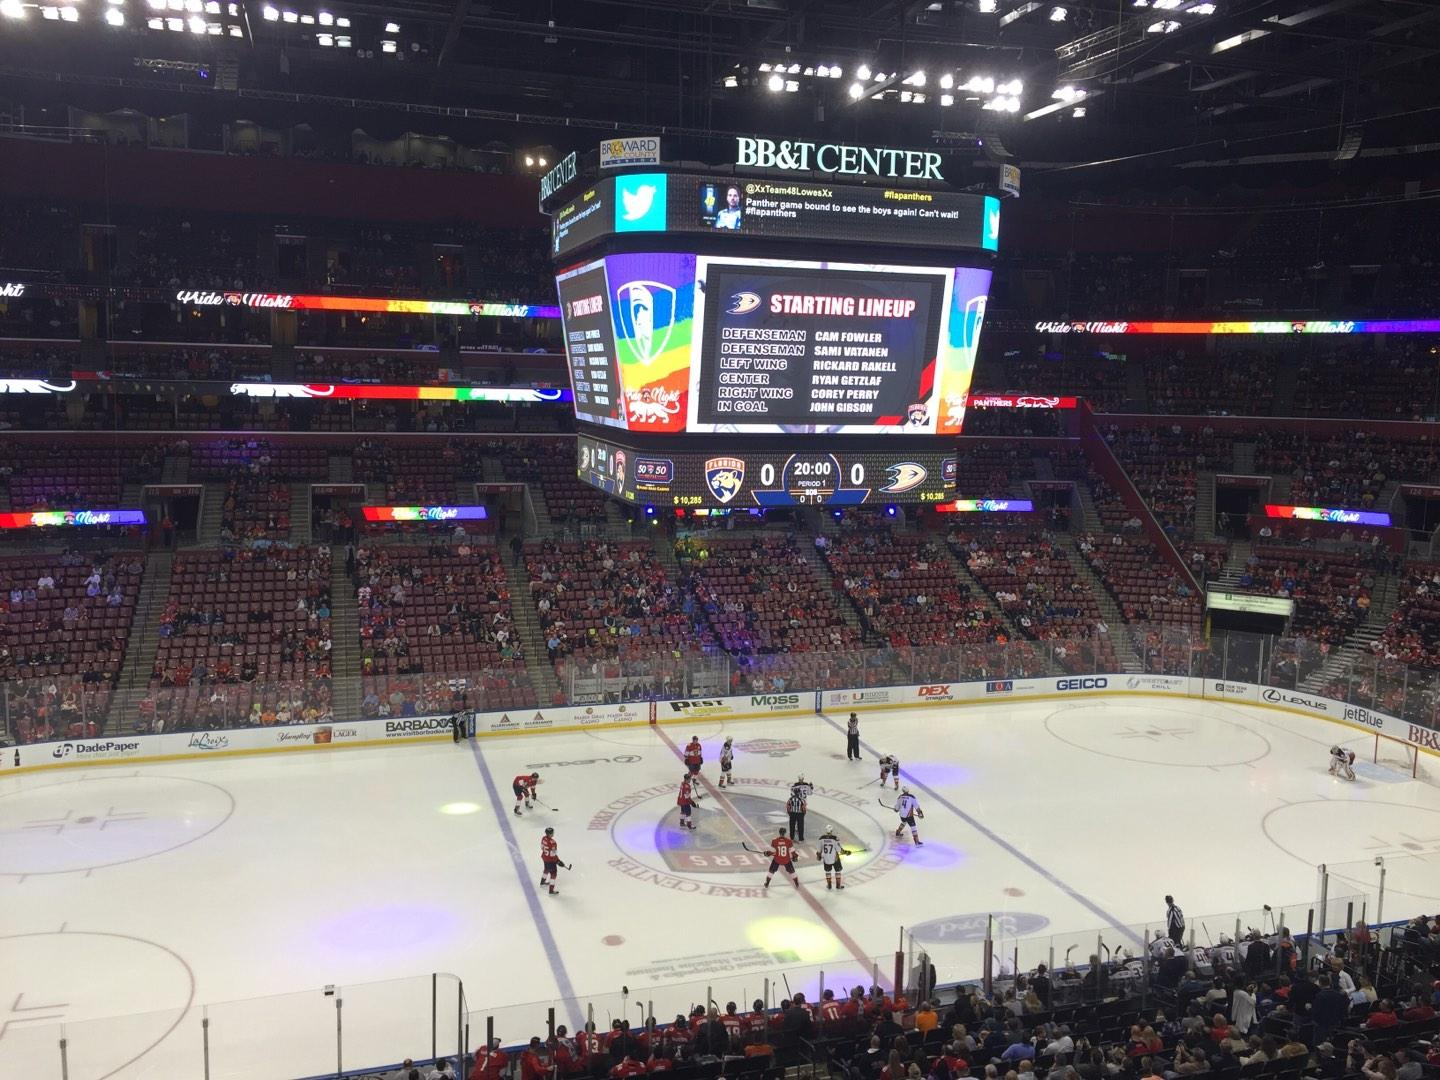 BB&T Center Section CL02 Row 1 Seat 13